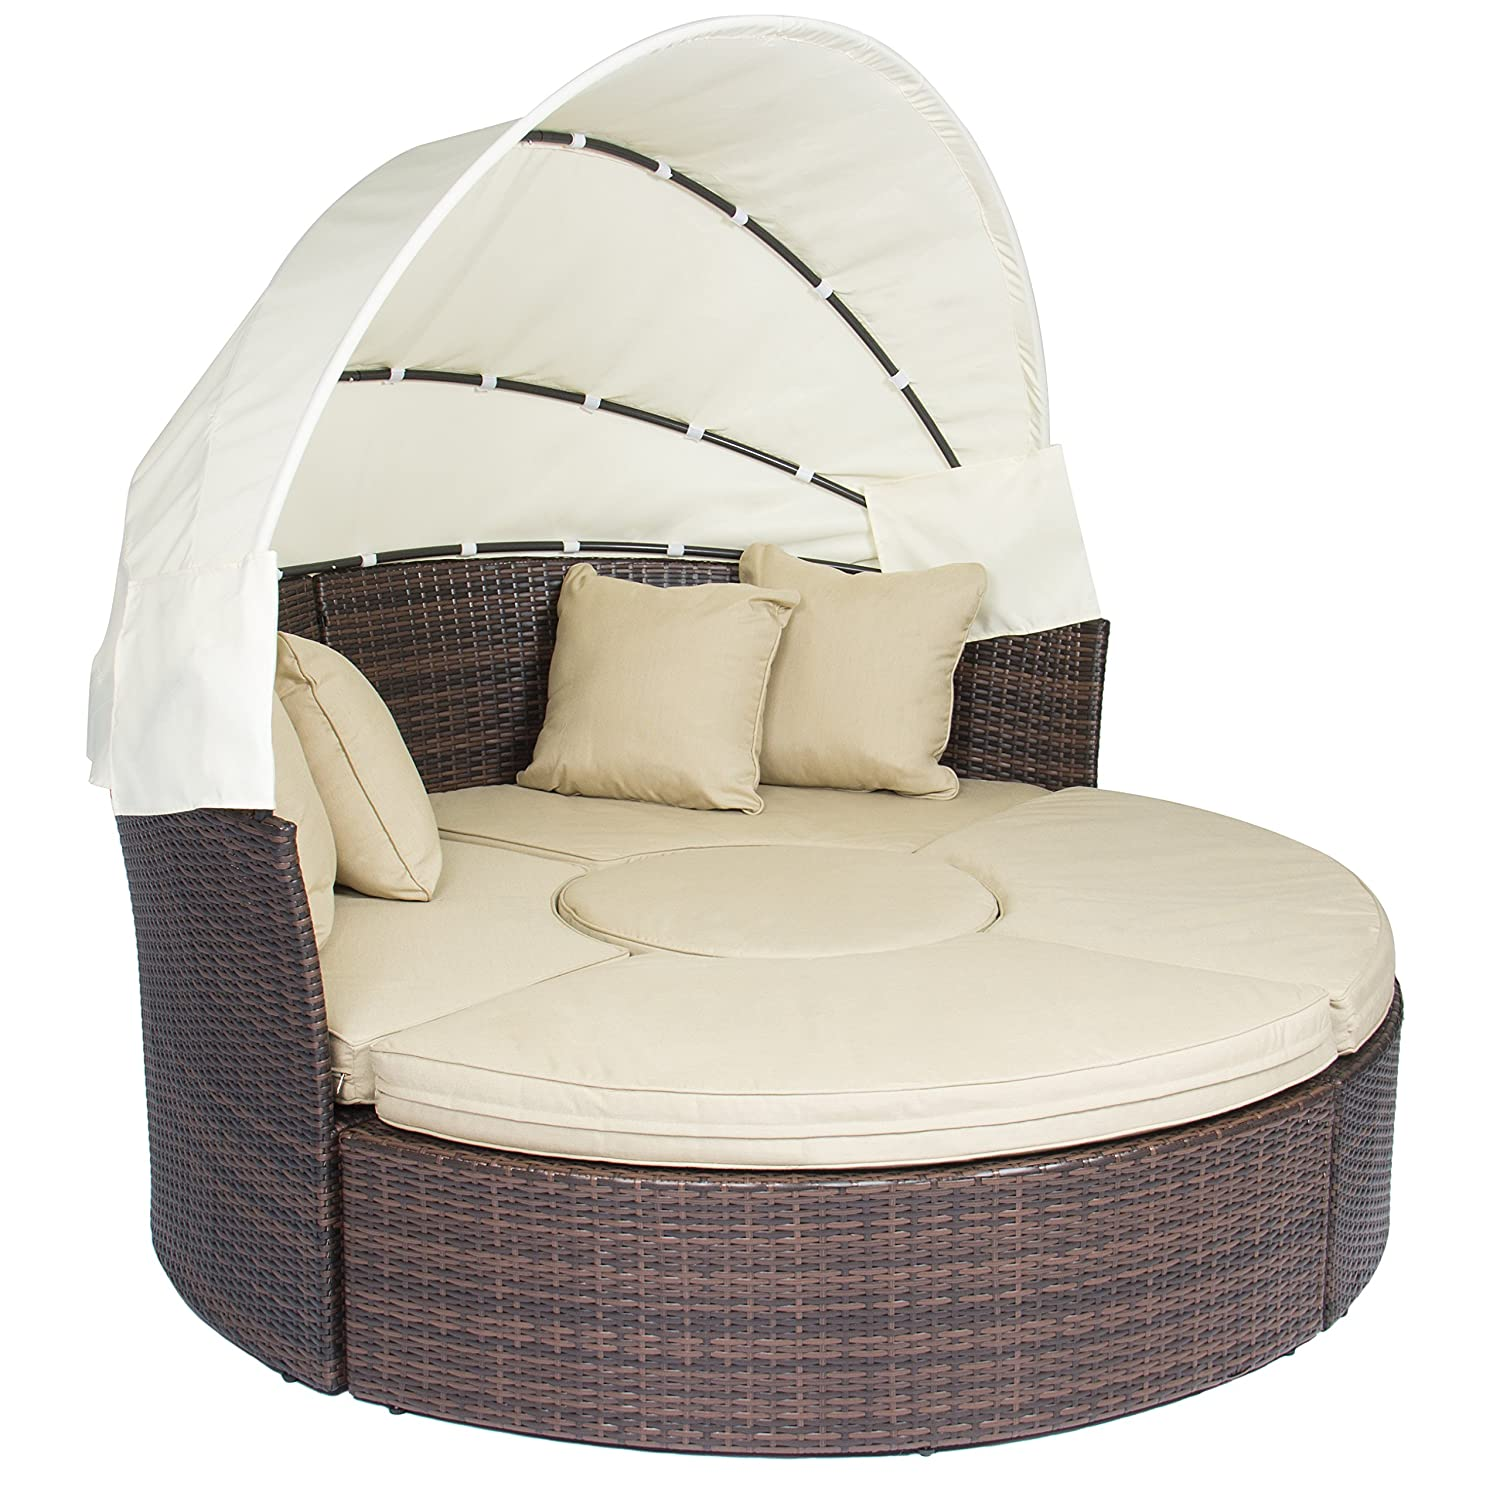 Lounge sofa rund  Amazon.com : Outdoor Patio Sofa Furniture Round Retractable Canopy ...